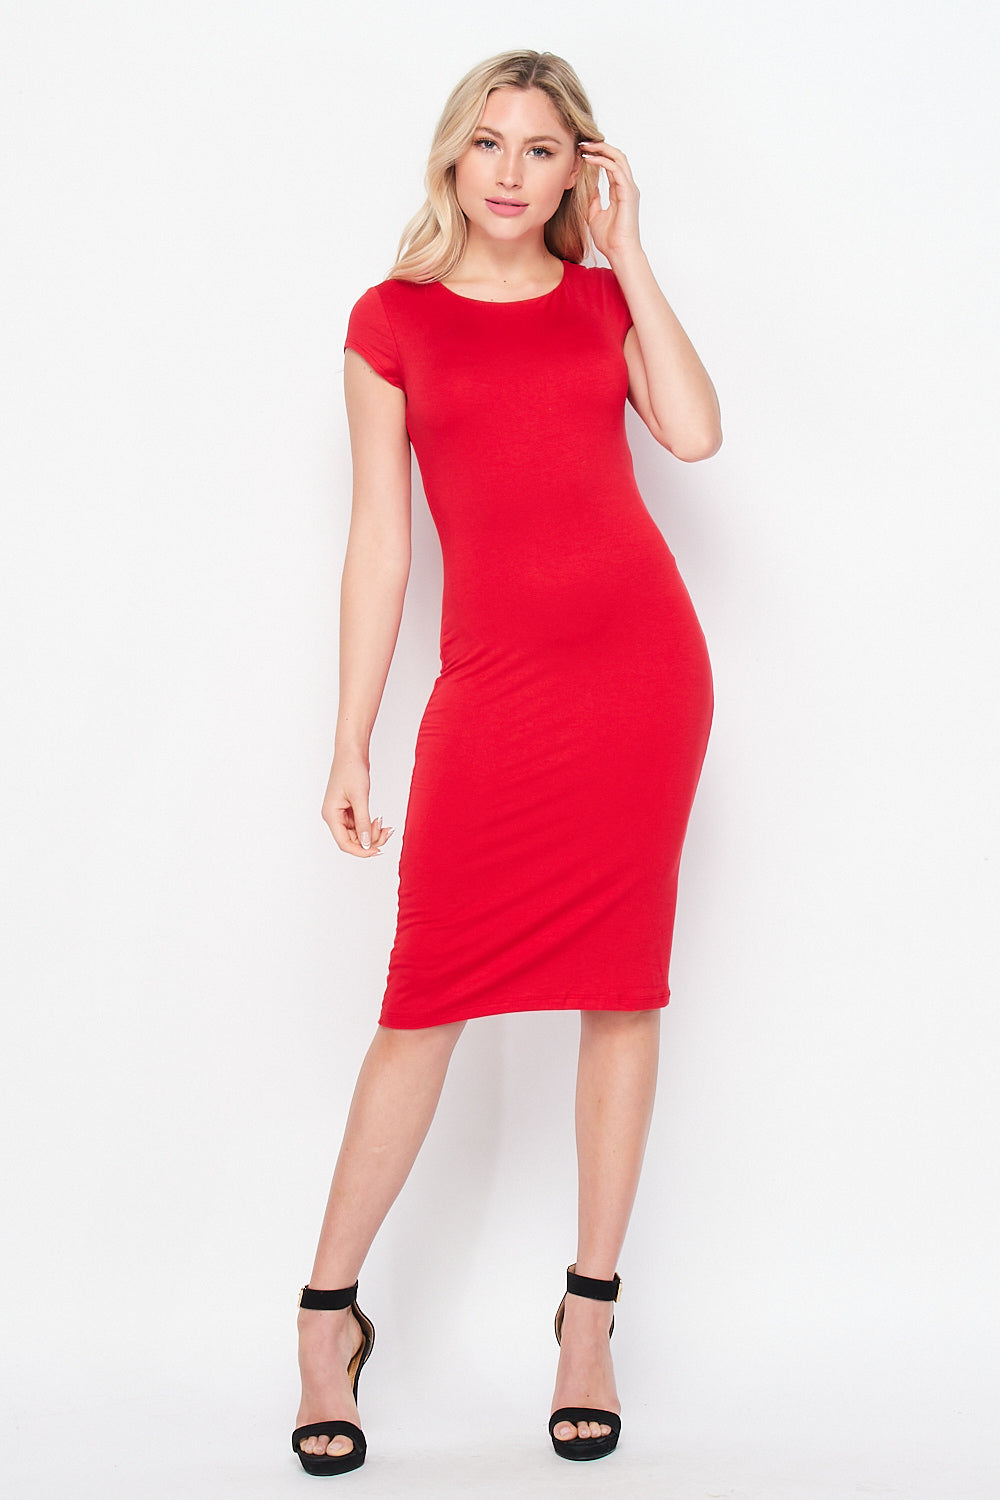 Cap Sleeve Fitted Knit Midi Dress | Red - Velvet Torch